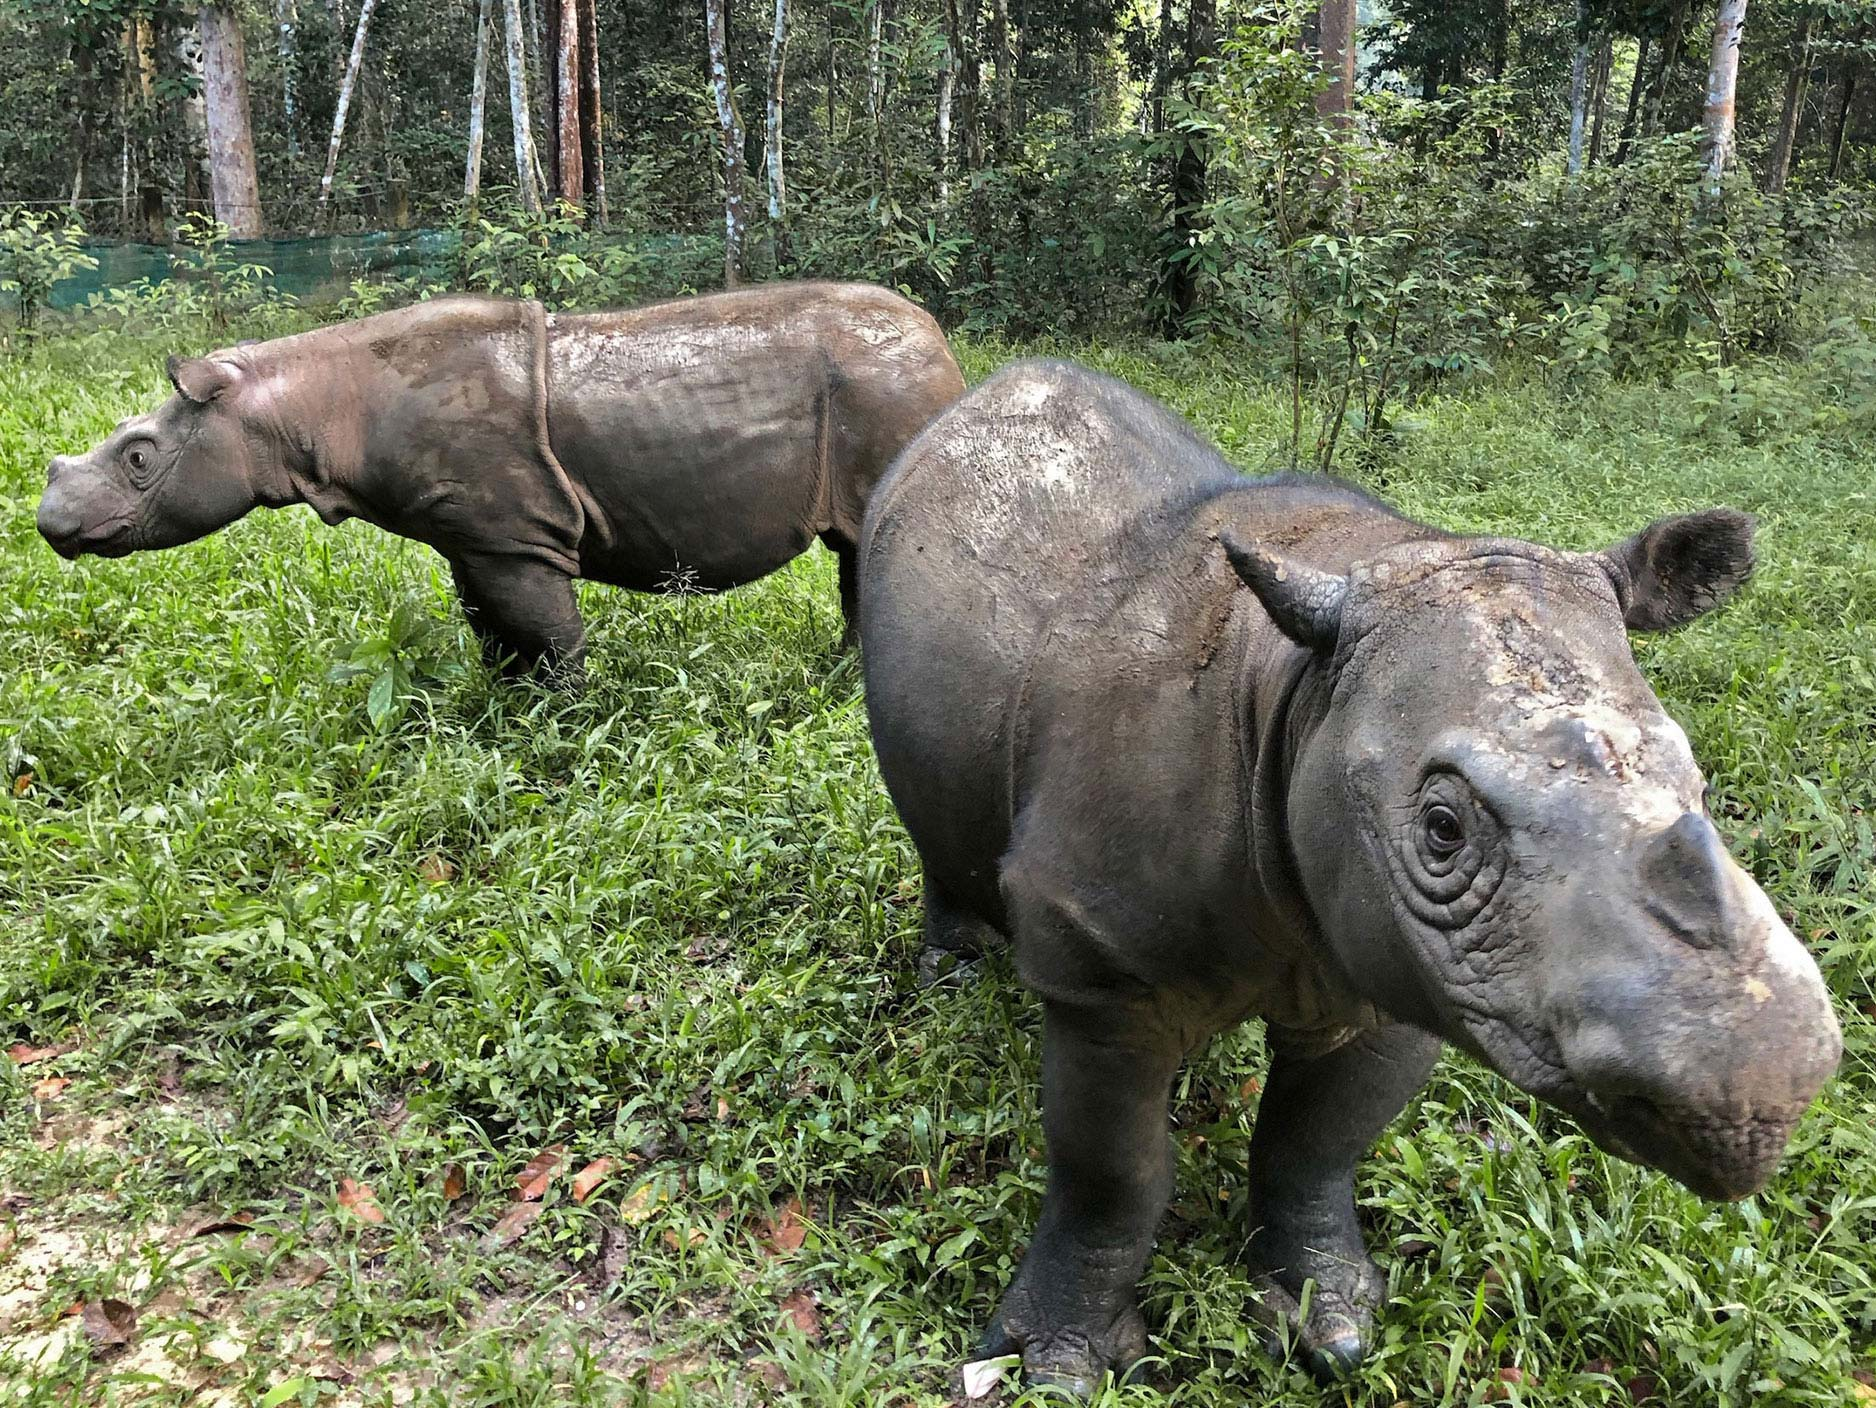 BUILD CAPACITY - With more rhinos rescued from the wild, additional facilities are needed to care for them. To accommodate the rhinos rescued in this effort, Sumatran Rhino Rescue will expand the existing facility in Way Kambas National Park in southern Sumatra, and support the development of two new Sumatran rhino sanctuaries in Indonesia — one in Indonesian Borneo and the other in northern Sumatra.